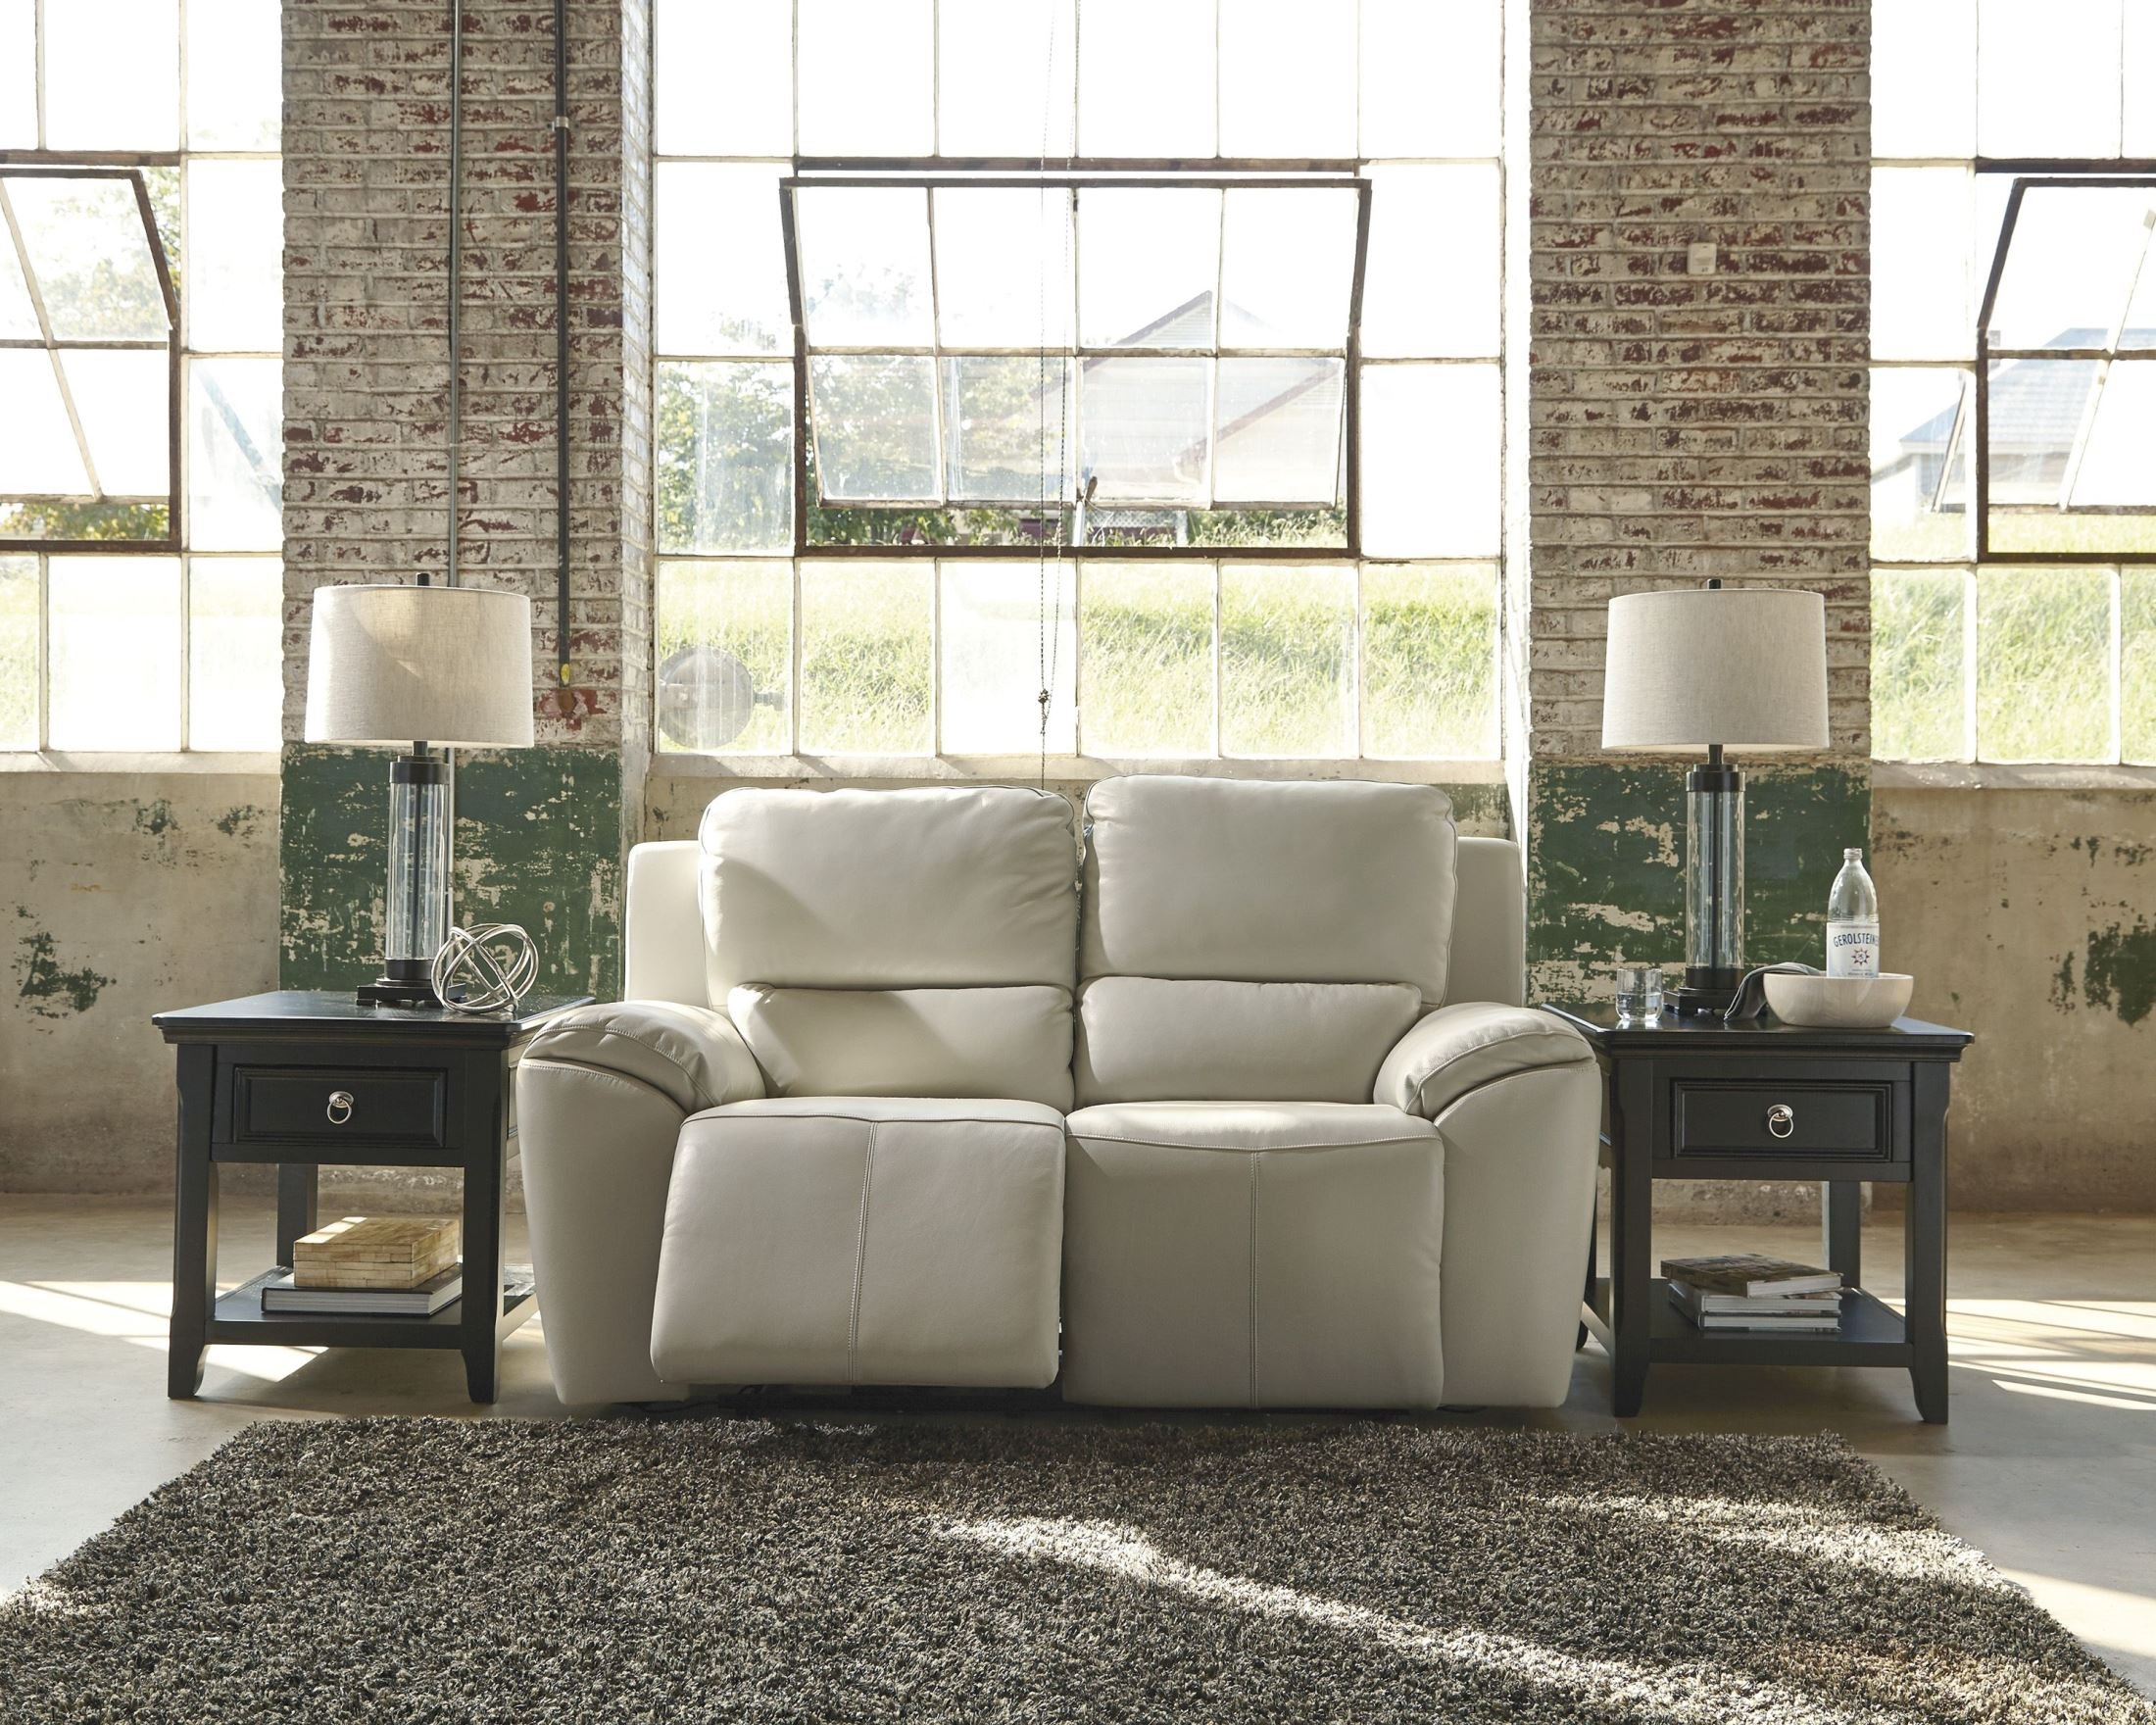 Ashley Valeton U7350074 70'' Leather Match Power Reclining Loveseat with Plush Padded Arms Jumbo Stitching Details and Split Back Cushions in Cream by Ashley Furniture (Image #1)